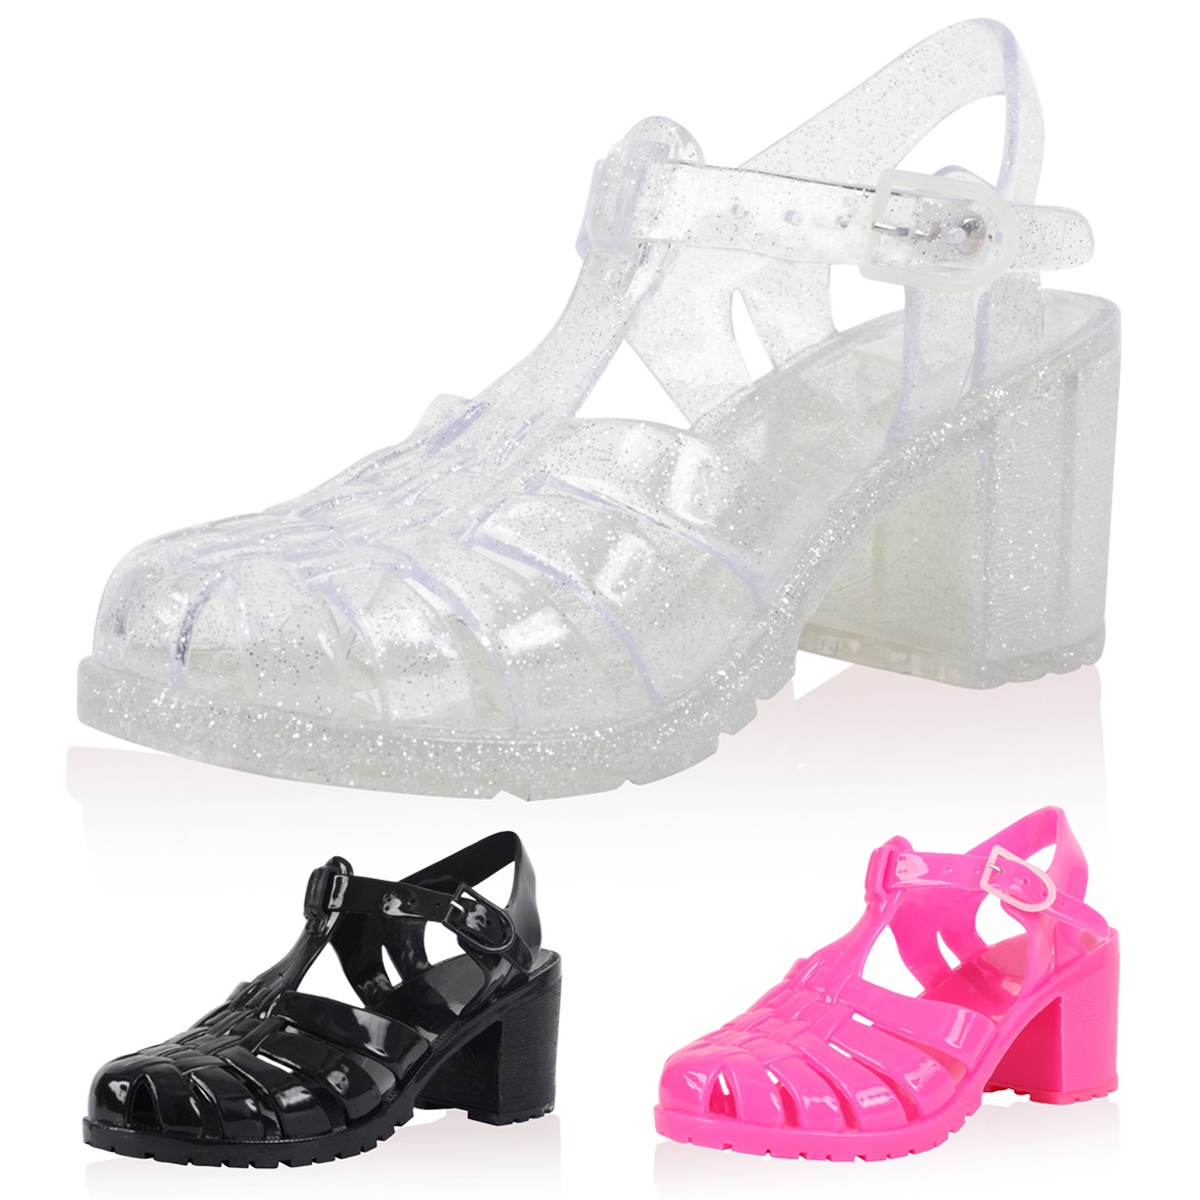 Find great deals on eBay for jelly heels. Shop with confidence. Skip to main content. eBay: Block Heel Solid Sandals for Women with Jelly. Block Heel Synthetic Sandals for Women with Jelly. Feedback. Leave feedback about your eBay search experience. Additional site navigation.